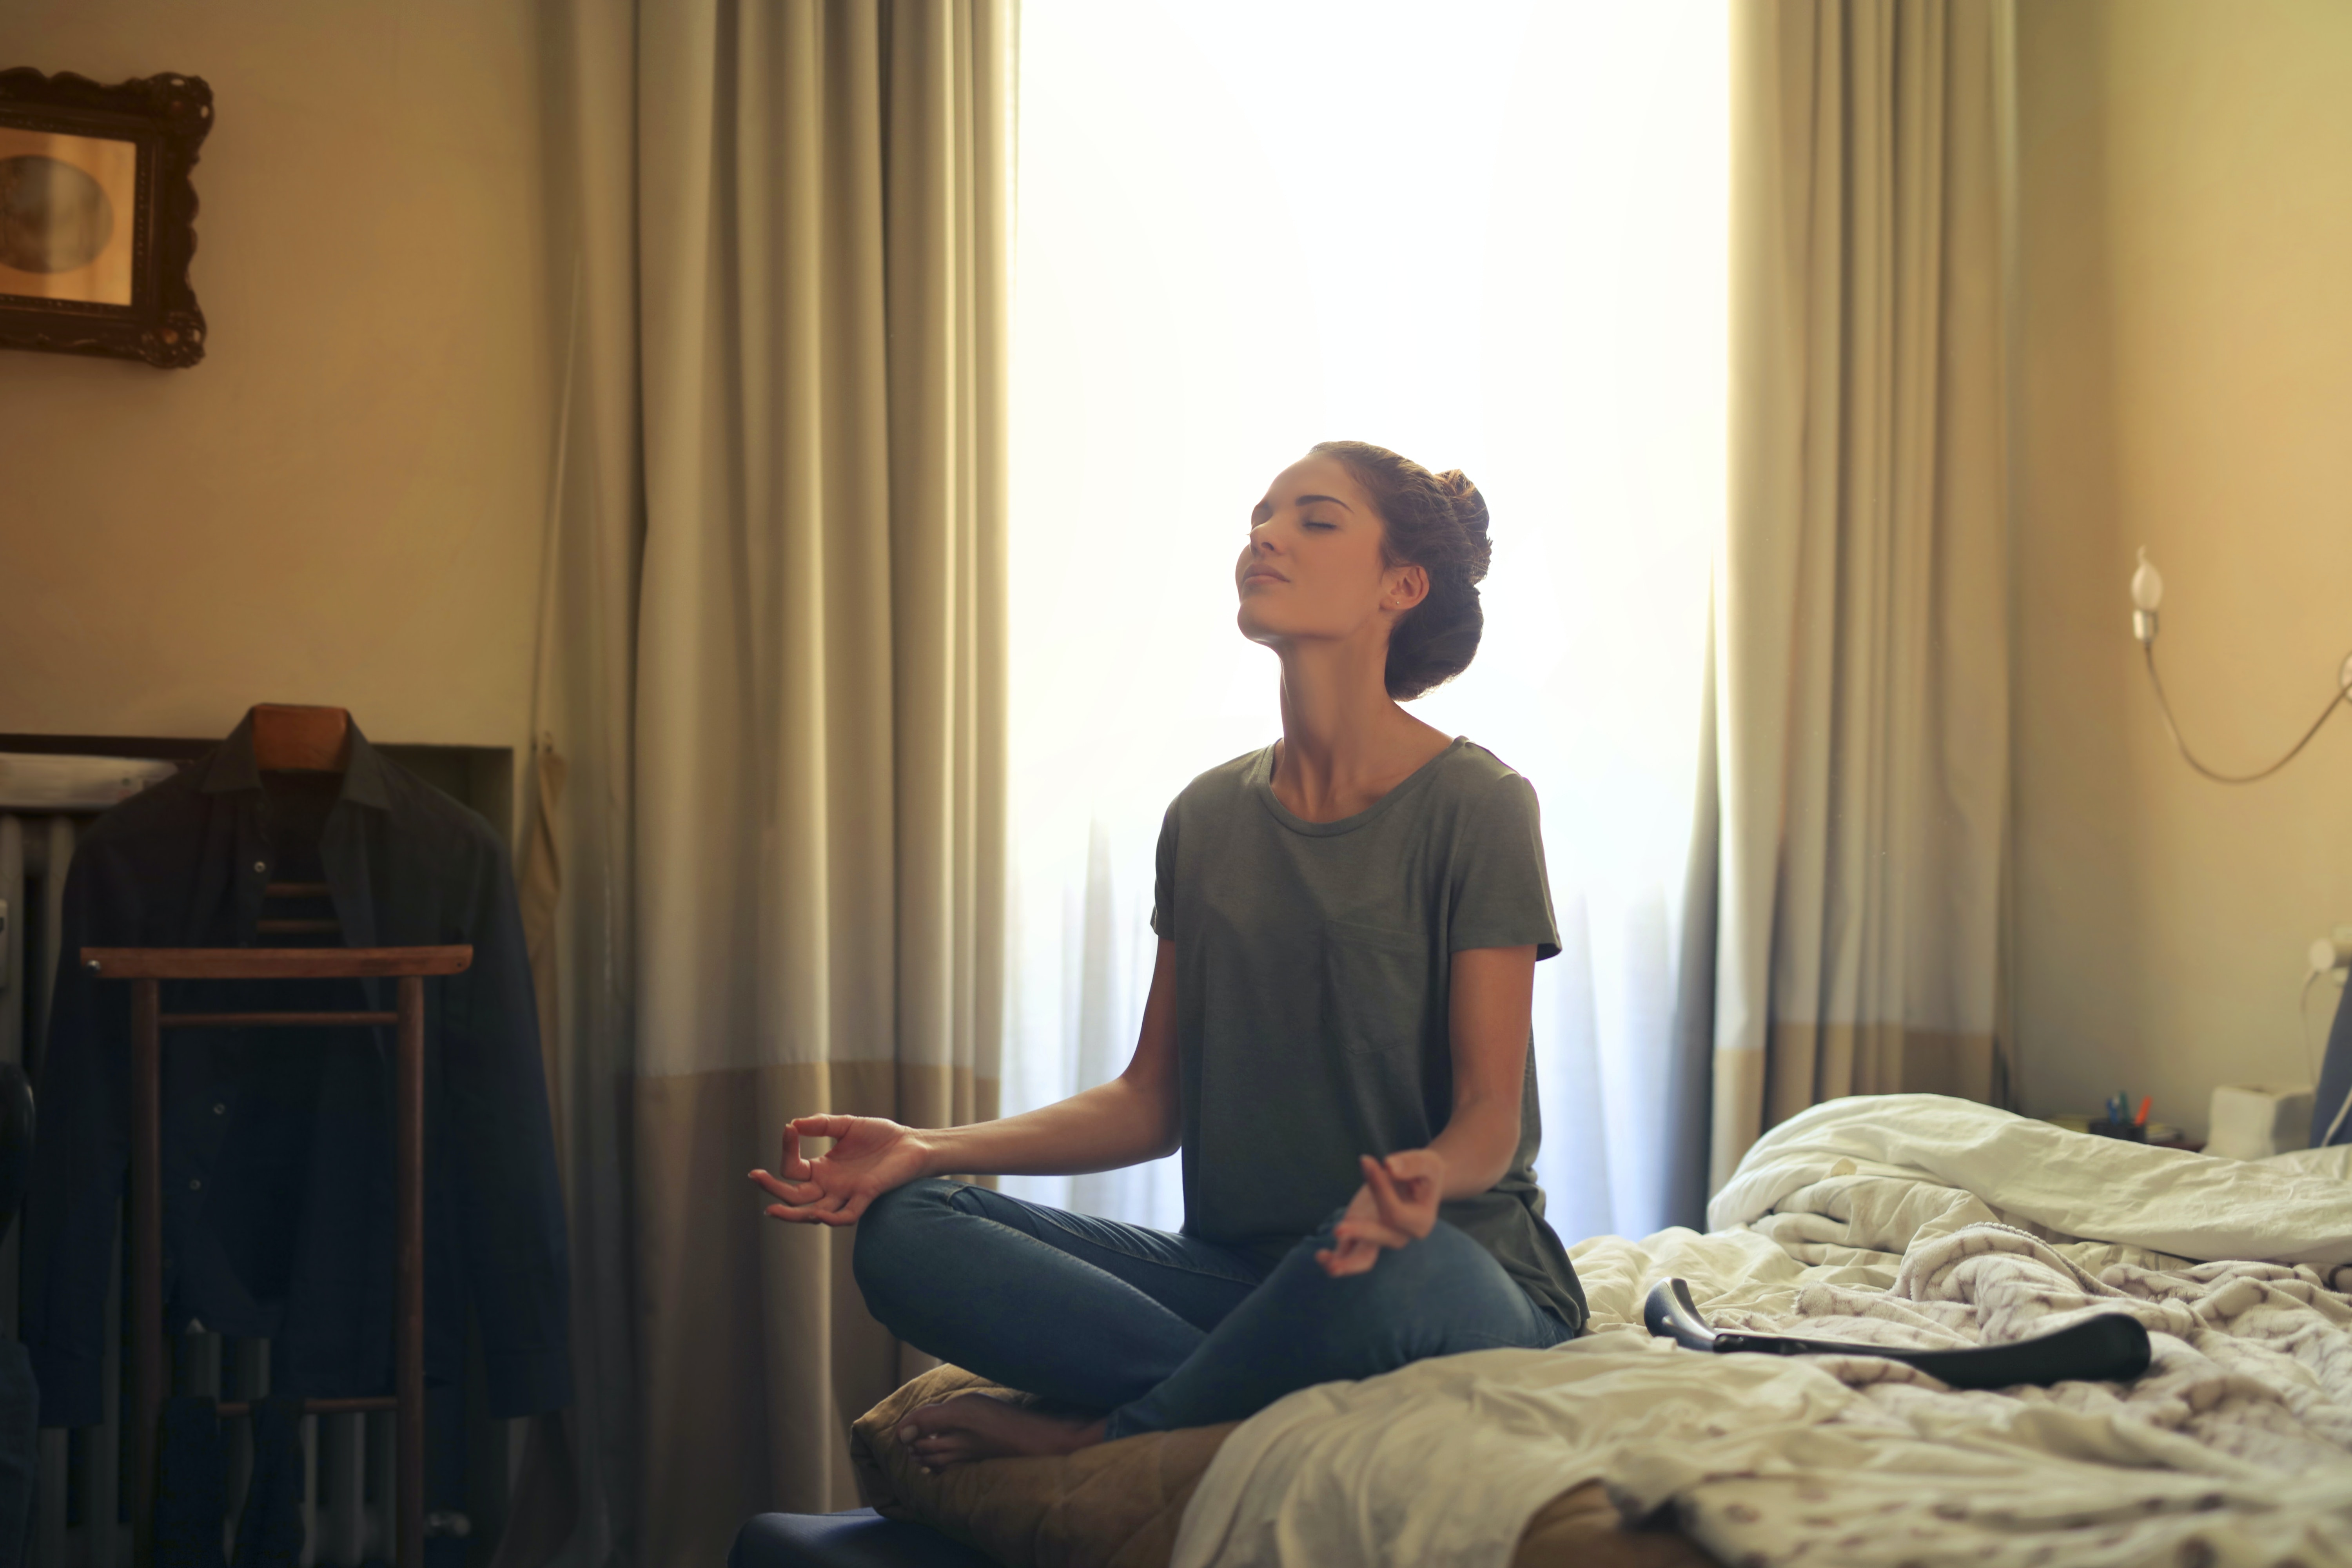 Meditation is a tool which can help both your emotional well-being and your overall health.